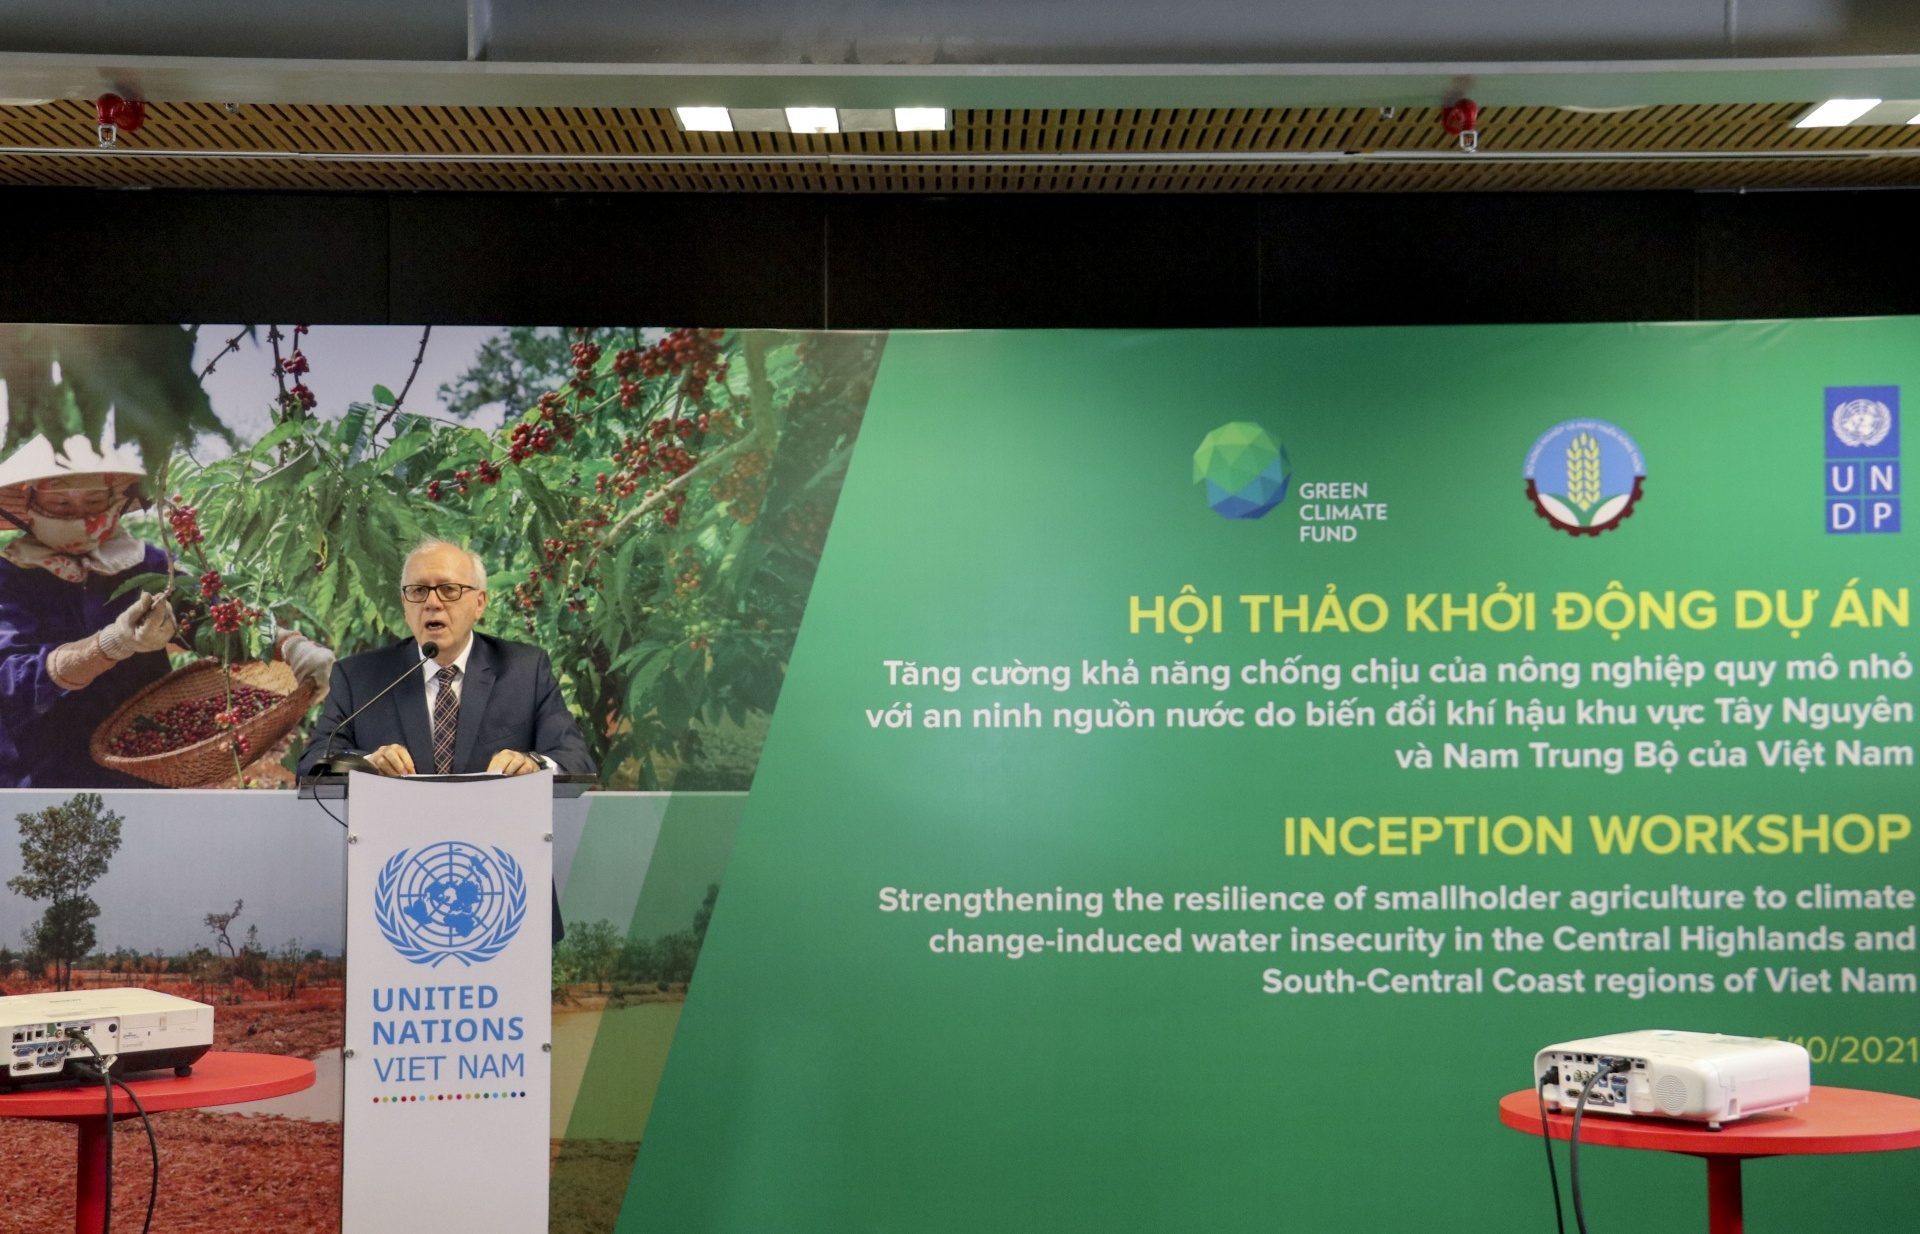 New climate change adaptation project launched